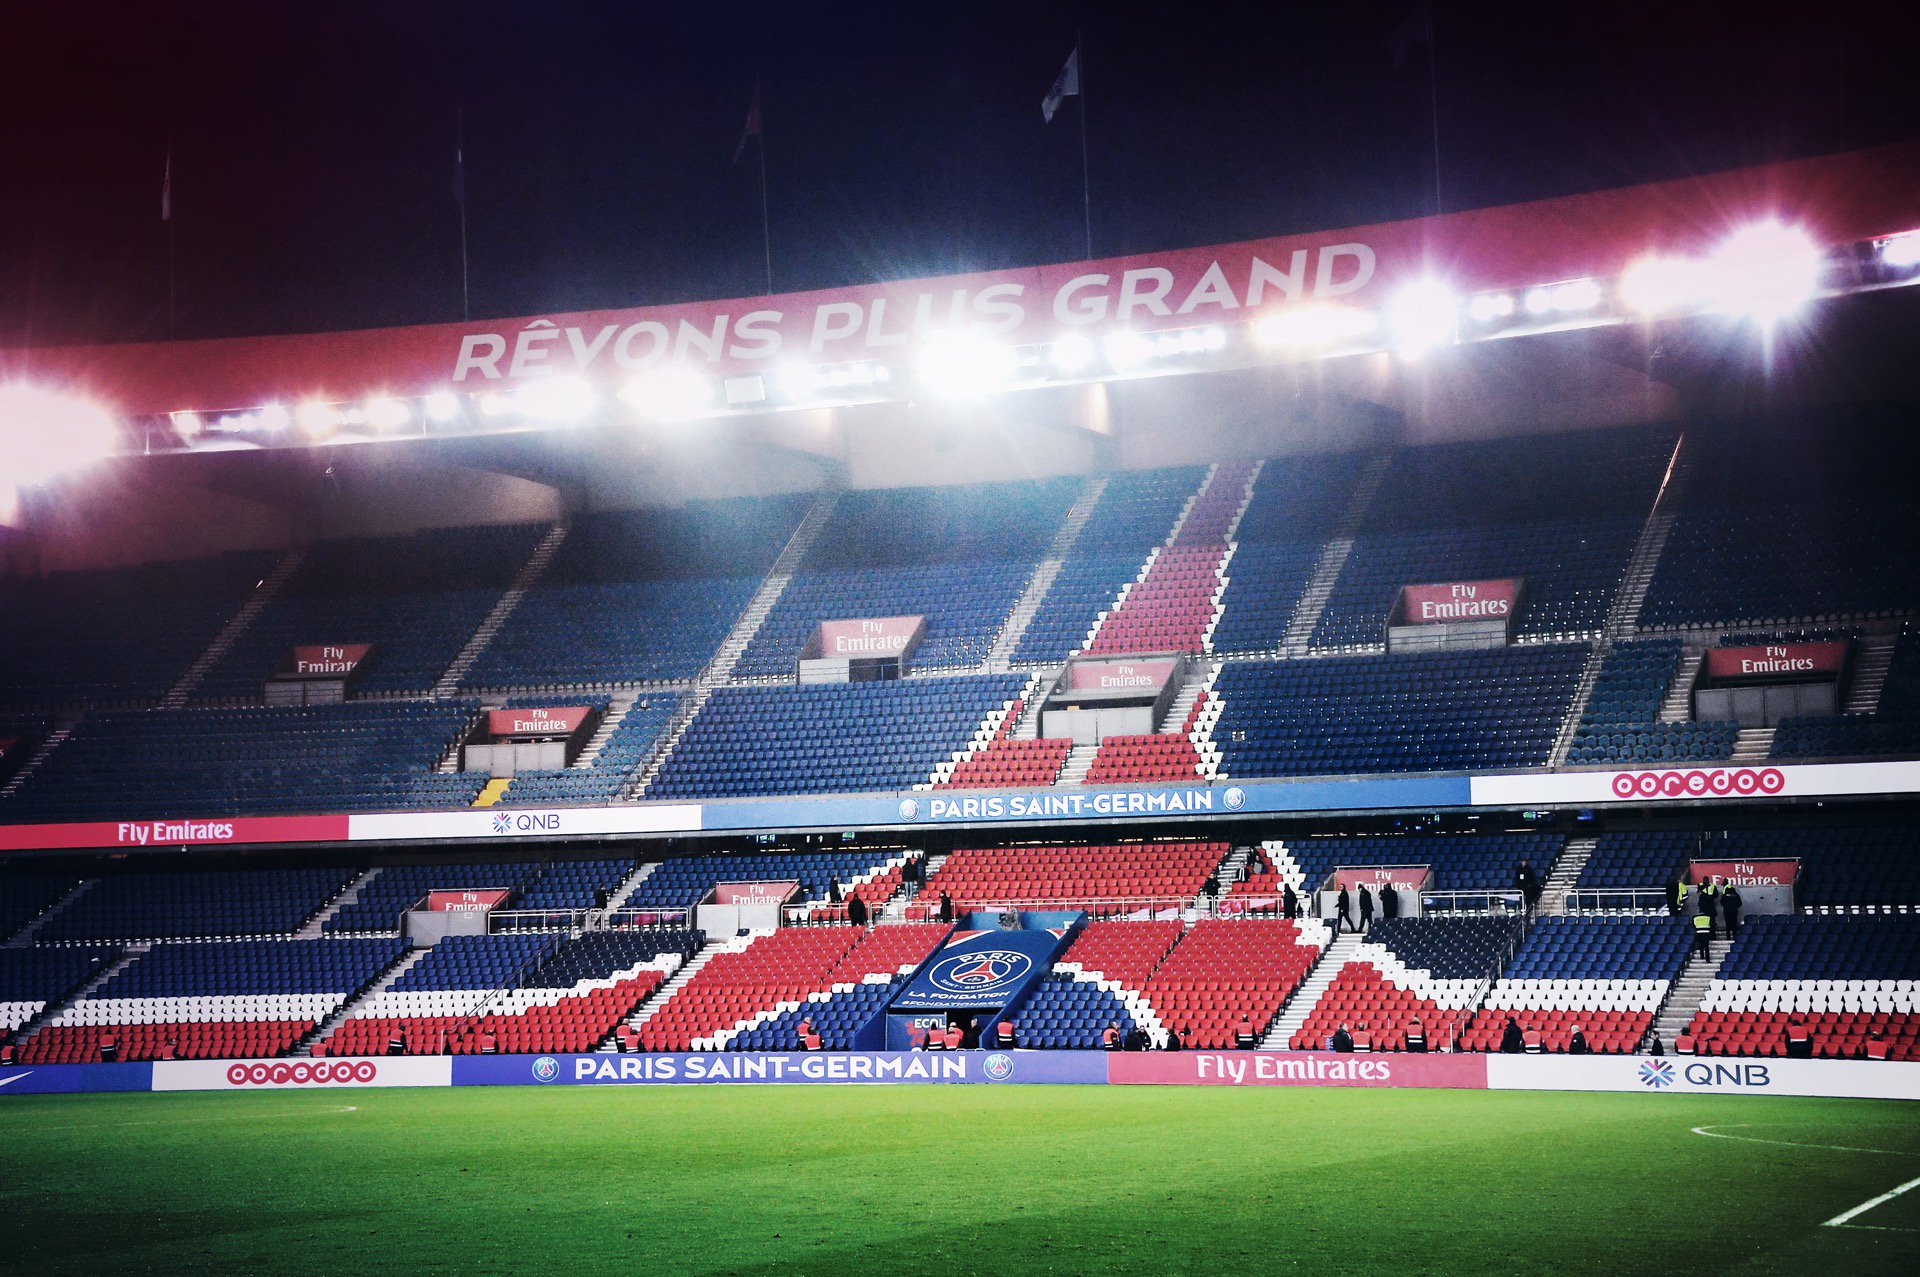 My last game tomorrow at Parc des Princes. I came like a king, left like a legend https://t.co/OpLL3wzKh0